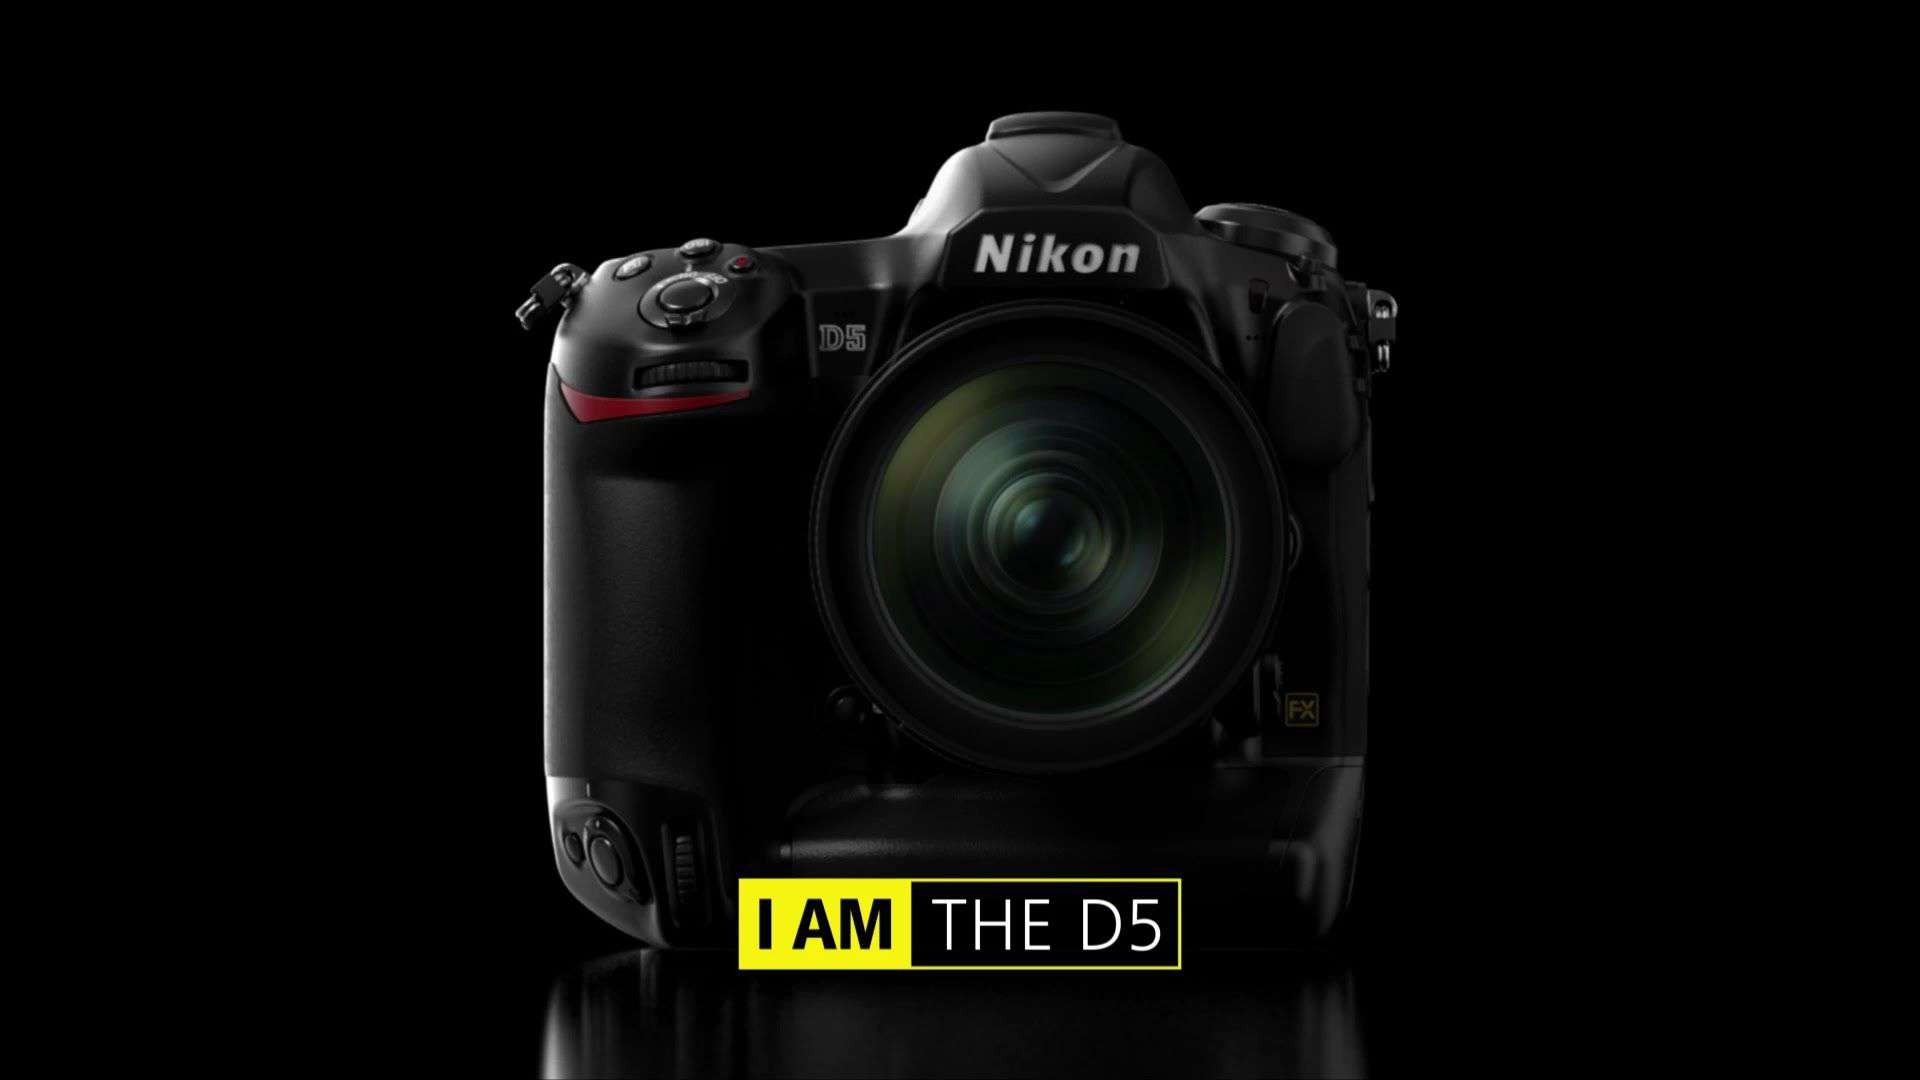 amazon Nikon D5 reviews Nikon D5 on amazon newest Nikon D5 prices of Nikon D5 Nikon D5 deals best deals on Nikon D5 buying a Nikon D5 lastest Nikon D5 what is a Nikon D5 Nikon D5 at amazon where to buy Nikon D5 where can i you get a Nikon D5 online purchase Nikon D5 Nikon D5 sale off Nikon D5 discount cheapest Nikon D5 Nikon D5 for sale Nikon D5 products Nikon D5 tutorial Nikon D5 specification Nikon D5 features Nikon D5 test Nikon D5 series Nikon D5 service manual Nikon D5 instructions Nikon D5 accessories buy nikon d5 b&h nikon d5 brochure nikon d5 best lens for nikon d5 bán nikon d5 bythom nikon d5 best xqd card for nikon d5 battery for nikon d5 brad hill nikon d5 best price nikon d5 canon 1dx mark 2 vs nikon d5 canon 1dx2 vs nikon d5 cost of nikon d5 canon 1dx mk2 vs nikon d5 ces nikon d5 canon 5d mark iii vs nikon d5 nikon d5 camera canon nikon d5 costo nikon d5 cena nikon d5 nikon d5 dpreview danh gia nikon d5 nikon d5 dxomark dave black nikon d5 dcfever nikon d5 date de sortie du nikon d5 d800 vs nikon d5 die neue nikon d5 dxo nikon d5 dslr nikon d5 eos 1dx mark ii vs nikon d5 engadget nikon d5 expected price of nikon d5 essai nikon d5 ebay nikon d5 erscheinungsdatum nikon d5 eos 1dx mark ii nikon d5 canon eos 1dx vs nikon d5 canon eos-1dx mark ii nikon d5 finance nikon d5 forum nikon d5 fro knows photo nikon d5 f64 nikon d5 future nikon d5 fiche technique nikon d5 flickr nikon d5 fotopolis nikon d5 fnac nikon d5 giá nikon d5 gia may anh nikon d5 goc anh nikon d5 geizhals nikon d5 matt granger nikon d5 how good is the nikon d5 vat gia nikon d5 nikon d5 gps nikon d5 user guide nikon d5 gallery harga nikon d5 harga kamera nikon d5 how much will the nikon d5 cost nikon d5 henry's harga nikon d5 100 harga nikon d5 malaysia hire nikon d5 high iso nikon d5 harga dslr nikon d5 iso nikon d5 how much is the nikon d5 sample images nikon d5 how much is the new nikon d5 nikon d5 price in india nikon d5100 i nikon d5200 nikon d5200 i nikon d5300 nikon d3200 i nikon d5200 nikon d5300 i nikon d5500 nikon d5100 price i india joe mcnally nikon d5 jual nikon d5 jared polin nikon d5 juza nikon d5 ole jørgen liodden nikon d5 nikon d5 japan nikon d5 jessops nikon d5 jp nikon d5 made in japan nikon d5 january 2016 kamera nikon d5 kelebihan nikon d5 nikon d5 ken rockwell kiedy nikon d5 kakaku nikon d5 ken rockwell nikon d5 review pentax k-1 vs nikon d5 när kommer nikon d5 leica sl vs nikon d5 latest news on nikon d5 lightroom nikon d5 lightroom update for nikon d5 launch of nikon d5 lenses for nikon d5 l bracket nikon d5 lightroom support for nikon d5 latest nikon d5 rumors lens for nikon d5 máy ảnh nikon d5 manual nikon d5 moose peterson nikon d5 may nikon d5 mua nikon d5 may chup hinh nikon d5 microspot nikon d5 mercado libre nikon d5 mobile01 nikon d5 orms nikon d5 order nikon d5 ole nikon d5 price of nikon d5 in india pictures of nikon d5 news on nikon d5 release of nikon d5 price of nikon d5 hands on nikon d5 nikon d5 pre order petapixel nikon d5 problems with nikon d5 prix du nikon d5 prezzo nikon d5 photos with nikon d5 preis nikon d5 pris nikon d5 quando esce la nikon d5 quesabesde nikon d5 image quality nikon d5 nikon d5 xqd nikon d5 quiet mode nikon d5 video quality nikon d5 build quality nikon d5 price in qatar nikon d5000 release mode q quanto costa la nikon d5 rockwell nikon d5 rumours nikon d5 reddit nikon d5 ra mắt nikon d5 rent nikon d5 raw nikon d5 rumeur nikon d5 recensione nikon d5 release nikon d5 rumors nikon d5 sony a7sii vs nikon d5 spesifikasi nikon d5 shipping nikon d5 shipping date nikon d5 should i buy a nikon d5 shashinki nikon d5 sensor nikon d5 samples nikon d5 screen protector for nikon d5 sony a7 vs nikon d5 thom hogan nikon d5 tony northrup nikon d5 thông số nikon d5 tren tay nikon d5 toppreise nikon d5 testbilder nikon d5 test iso nikon d5 the nikon d5 the new nikon d5 test nikon d5 used nikon d5 unboxing nikon d5 nikon d5 youtube uk nikon d5 ulasan nikon d5 uscita nikon d5 nikon d5 price in uae nikon d5 user manual nikon d5 release date uk vistek nikon d5 viewfinder nikon d5 video nikon d5 nikon d750 vs nikon d5 nikon d4s vs nikon d5 canon 1dx ii vs nikon d5 canon 1dx vs nikon d5 nikon d500 vs nikon d5 nikon d810 vs nikon d5 xqd card for nikon d5 xqd vs cf nikon d5 xqd nikon d5 youtube nikon d5 review youtube nikon d5 nikon d5 new zealand nikon d5 zap đánh giá nikon d5 1dx mark ii nikon d5 1dx mark ii vs nikon d5 1dx vs nikon d5 1dx mark 2 vs nikon d5 1dx ii vs nikon d5 canon 1dx mkii vs nikon d5 canon 1dc vs nikon d5 canon 1dxii vs nikon d5 2016 nikon d5 2015 nikon d5 ces 2016 nikon d5 nikon d5 rumors 2015 nikon d5 200 atomos ninja 2 nikon d5200 nikon d5 300 price nikon d5 360 nikon d5 300 lightroom 3 nikon d5300 nikon d5 3 million iso 4k nikon d5 nikon d5 4k video nikon d5 4k recording time nikon d5 4k price in india nikon d5 4k price nikon d5 4k 3 minutes nikon d5 4k bitrate nikon d5 4k crop nikon d5 4k specs nikon d5 4k fiyat canon 5dsr vs nikon d5 canon 5d vs nikon d5 canon 5ds vs nikon d5 nikon d5 500 nikon d5 vs 5d mark iii nikon d5 vs canon 5d mark 3 pentax 645z vs nikon d5 canon 6d vs nikon d5 nikon d5 4k 60fps nikon d5 vs 6d nikon d5 4k 60p nikon 810 vs nikon d5 nikon d5 vs d810 nikon body d5 nikon d5 brochure nikon d5 battery nikon d5 buffer nikon d5 price in bangladesh nikon d5 blog nikon d5 best price nikon d5 base iso nikon canada d5 nikon ces d5 nikon camera d5 nikon.com d5 new nikon camera d5 nikon d5 cost nikon d5 dslr camera nikon d5 vs canon 5d mark iii nikon d5 vs canon 1d nikon d5 ebay canon eos 1dx mark ii vs nikon d5 eos-1d x mark ii vs nikon d5 nikon d5300 vs olympus om-d e-m5 nikon d5300 vs olympus om-d e-m1 olympus om-d e-m10 vs nikon d5200 nikon d5500 vs olympus om-d e-m10 nikon d5500 vs olympus om-d e-m1 nikon forum d5 nikon flagship d5 nikon fx d5 nikon france d5 nikon full frame d5 nikon d5 for sale nikon d5 fiyat shipping date for nikon d5 pictures from nikon d5 nikon d5 vat gia nikon d5 greece nikon hk d5 nikon d5 high iso nikon d5 hands on review nikon d5 price hk nikon d5 hinta harga dan spesifikasi nikon d5 how much nikon d5 nikon d5 vs canon 1dx mark ii nikon d5 iso nikon d5 sample images nikon d5300 kit 18-55 vr i nikon d5000 i nikon d5100 i d5200 nikon jp d5 nikon d5 juza nikon kamera d5 nikon d5 ken nikon d5 kaina nikon d5 kaufen nikon d5 kakaku wann kommt die nikon d5 nikon d5500 vs pentax k 50 pentax k-5 iis vs nikon d5300 nikon d5 low light nikon d5 launch nikon d5 launch date nikon d5 latest news nikon d5 low light samples nikon d5 lenses nikon d5 low iso nikon d5 lens nikon d5 leak nikon d5 launch event canon mark d5 nikon motion d5 nikon d5 manual nikon d5 price in malaysia nikon d5 manual pdf nikon new camera d5 nikon nikon d5 nikon new d5 nikon d5 vs nikon d4s nikon d5 and other nikon rumours nikon d5 giá bao nhiêu nikon d800 vs nikon d5 nikon d5 nikon usa nikon d5 hands on nikon d5 on youtube dynamic range of nikon d5 review of nikon d5 images of nikon d5 nikon pro d5 nikon passion d5 nikon d5 price in pakistan nikon d5 pictures nikon d5 price philippines nikon d5 price australia nikon d5 image quality nikon d5 quesabesde nikon rumours d5 nikon rumors d5 nikon ra mat d5 nikon rumeur d5 nikon review d5 nikon rumor d5 when will nikon release the d5 nikon d5 review youtube nikon d5 rockwell nikon d5 dslr nikon d5 series nikon d5 samples nikon d5 shipping nikon d5 sensor nikon d5 specifications nikon d5 sortie nikon d5 specs nikon d5 sample image nikon d5 sample nikon test d5 when is the nikon d5 coming out nikon d5 tinhte when will the nikon d5 be released nikon d5 test images nikon d5 field test nikon d5 touch screen nikon usa d5 nikon uk d5 nikon d5 unboxing nikon d5 update nikon d5 firmware update nikon d5 vs d4s nikon d5 vs d750 nikon d5 vs canon 1dx nikon d5 vs sony a7r ii canon eos-1d x mark ii vs nikon d5 nikon 4k-capable d5 nikon 4k d5 nikon d4 d5 comparison nikon d5 d500 nikon d5 vs canon 5dsr nikon d5 vs canon 5ds nikon d5 d500 review nikon d5 vs canon 6d nikon d5 autofocus nikon d5 accessories nikon d5 australia nikon d5 anniversary nikon d5 adorama nikon d5 af points nikon d5 af fine tune nikon d5 and d850 nikon d5 aa filter nikon d5 body nikon d5 battery charger nikon d5 book nikon d5 best buy nikon d5 black friday nikon d5 body only nikon d5 body price nikon d5 bd price nikon d5 cũ nikon d5 charger nikon d5 cf nikon d5 cf vs xqd nikon d5 cena nikon d5 canada nikon d5 camera price in india nikon d5 cheat sheet nikon d5 danh gia nikon d5 dynamic range nikon d5 dslr price in india nikon d5 dslr camera price in india nikon d5 dimensions nikon d5 dslr price nikon d5 dslr camera (body only dual cf slots) nikon d5 eyepiece nikon d5 ethernet nikon d5 ebay uk nikon d5 err nikon d5 eyecup nikon d5 error nikon d5 efoto nikon d5 example images nikon d5 erscheinungsdatum nikon d5 flickr nikon d5 fps nikon d5 full frame nikon d5 for video nikon d5 facebook nikon d5 focus point nikon d5 fiyatı nikon d5 forum nikon d5 giá nikon d5 geizhals nikon d5 giveaway nikon d5 goecker nikon d5 matt granger nikon d5 harga nikon d5 hdr nikon d5 hdmi output nikon d5 hk price nikon d5 high iso review nikon d5 hire nikon d5 hong kong price nikon d5 images nikon d5 india nikon d5 issues nikon d5 india price nikon d5 iso test nikon d5 instruction manual nikon d5 image size nikon d5 in space nikon d5 jb hi fi nikon d5 jared polin nikon d5 joe mcnally nikon d5 kit nikon d5 kijiji nikon d5 kopen nikon d5 kiedy nikon d5 killer af nikon d5 kenrock nikon d5 low light performance nikon d5 lazada nikon d5 landscape photography nikon d5 live view nikon d5 lens compatibility nikon d5 megapixels nikon d5 memory card nikon d5 malaysia price nikon d5 mark iii nikon d5 malaysia nikon d5 max iso nikon d5 mark 2 nikon d5 models nikon d5 movie nikon d5 night photography nikon d5 nz nikon d5 nasa nikon d5 nikkor 400 nikon d5 nikkor 400 price in india nikon d5 network nikon d5 noise nikon d5 news nikon d5 network guide nikon d5 native iso nikon d5 vs d850 nikon d5 olx nikon d5 online nikon d5 owners manual nikon d5 on ebay nikon d5 official video nikon d5 or d810 nikon d5 occasion nikon d5 or d500 nikon d5 price nikon d5 photography nikon d5 price in india 2017 nikon d5 price in sri lanka nikon d5 quikr nikon d5 quando esce nikon d5 quanto costa nikon d5 review nikon d5 rumors nikon d5 release date nikon d5 release nikon d5 rumor nikon d5 ra mat nikon d5 rumours nikon d5 rumeur nikon d5 recensione nikon d5s nikon d5s price in india nikon d5s rumors nikon d5s release date nikon d5s vs canon 1dx nikon d5slr nikon d5s vs nikon d810 nikon d5s vs d750 nikon d5sr nikon d5 tutorial nikon d5 tips nikon d5 test nikon d5 teardown nikon d5 tether nikon d5 to iphone nikon d5 tricks nikon d5 training nikon d5 used nikon d5 uk nikon d5 upgrade nikon d5 underwater housing nikon d5 usa nikon d5 used for sale nikon d5 uae nikon d5 used price nikon d5 vatgia nikon d5 và canon 1dx mark ii nikon d5 vs nikon d850 nikon d5 video nikon d5x nikon d5x price nikon d5x00 nikon d5x rumors nikon d5x review nikon d5xqd nikon d5 xqd compatibility nikon d5 xqd card nikon d5 year nikon d5 youtube review nikon d5 test youtube nikon d5 yorumlar nikon d5 yeni nikon d5 vs nikon d500 nikon d5 yodobashi nikon d5 zoom nikon d5 zubehör nikon d5 zdjęcia nikon d5 przykładowe zdjęcia nikon d5 đánh giá nikon d5 100th anniversary nikon d5 100th anniversary price nikon d5 100 anniversary nikon d5 100 price in india nikon d5 12 fps nikon d5 14 fps nikon d5 100 review nikon d5 100 manual nikon d5 2017 nikon d5 20.8 mp fx-format digital slr camera body (xqd version) nikon d5 200 price in india nikon d5 200 price nikon d5 2018 nikon d5 20.8 mp nikon d5 20.8mp fx-format digital slr camera body (cf version) nikon d5 2016 nikon d5 3d tracking nikon d5 300 specification nikon d5 mark3 nikon d5 4k 3分 nikon d5 4k video limit nikon d5 expeed 5